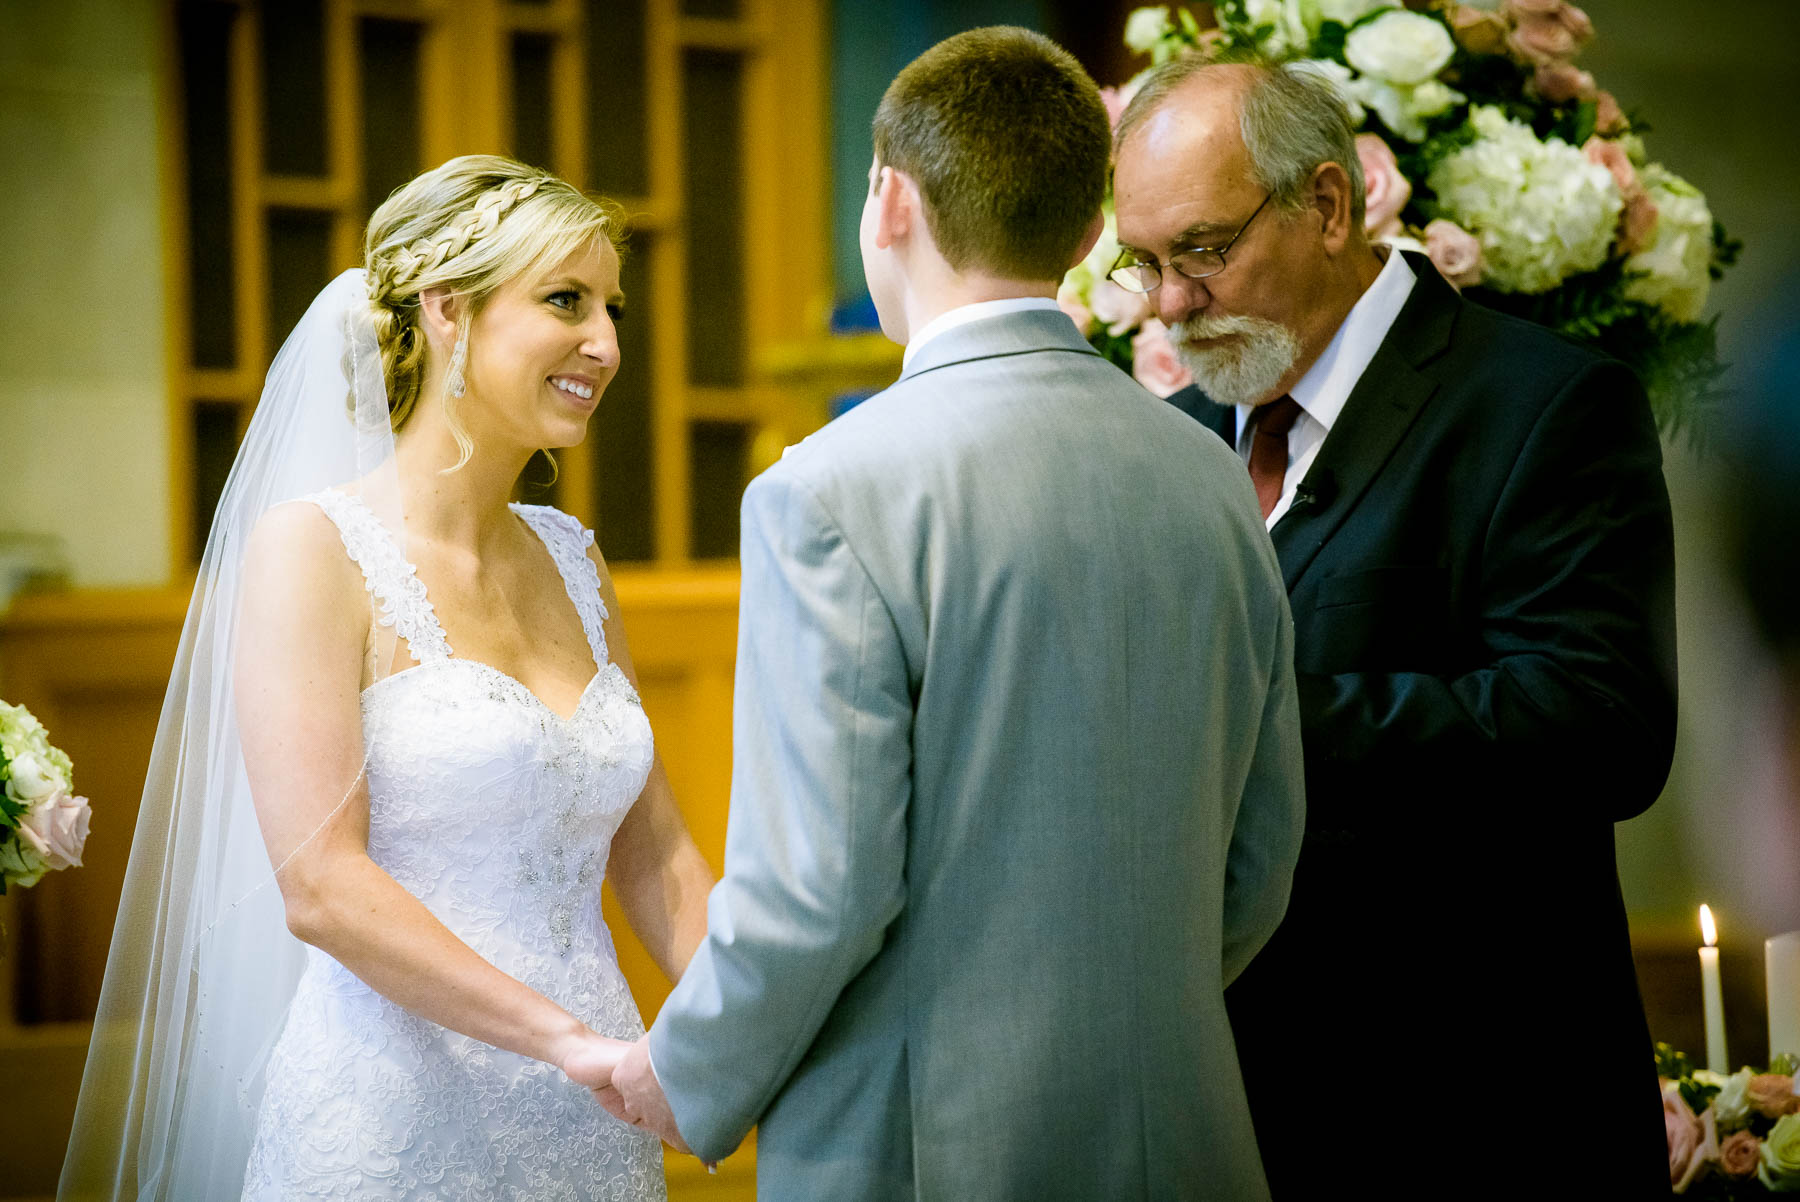 Bride and groom during their wedidng ceremony at Baker Memorial United Methodist Church in St. Charles